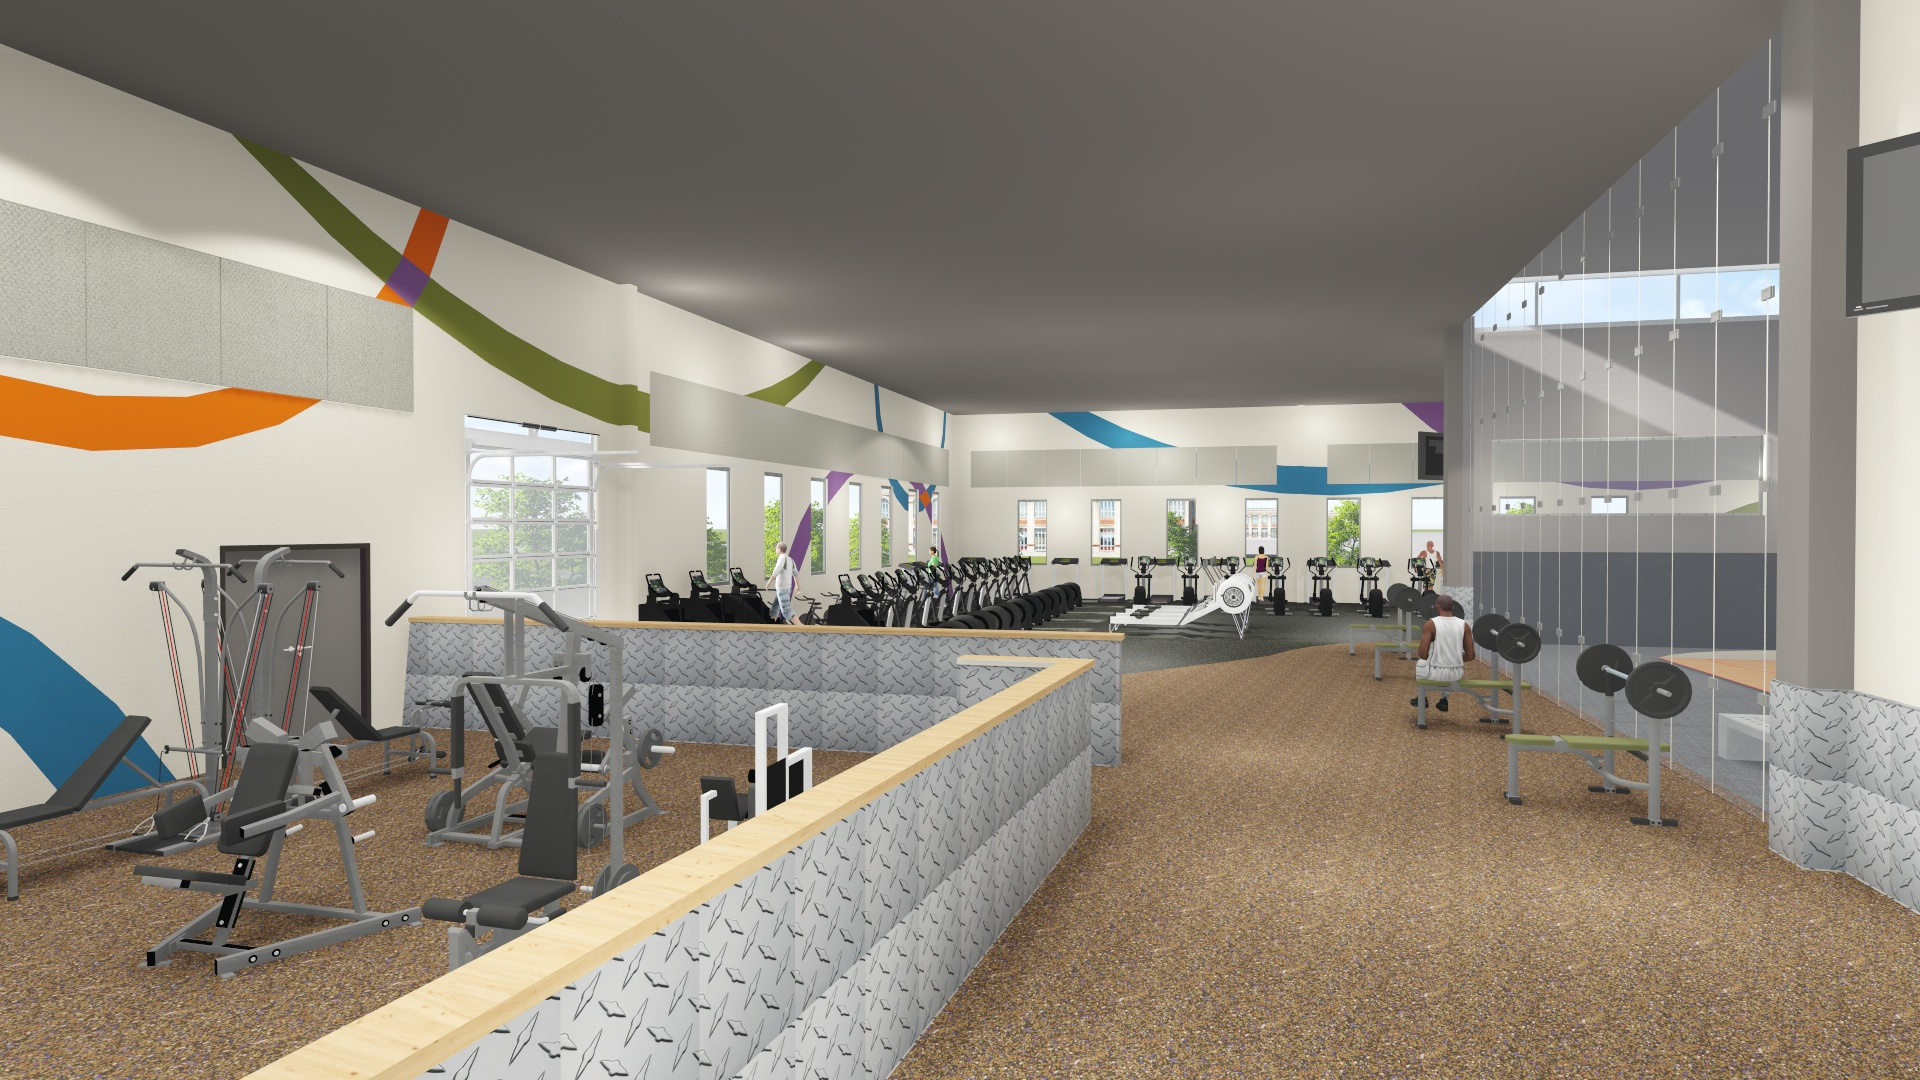 SNEAK PEEK! An interior rendering of the Y at 1st & Main.